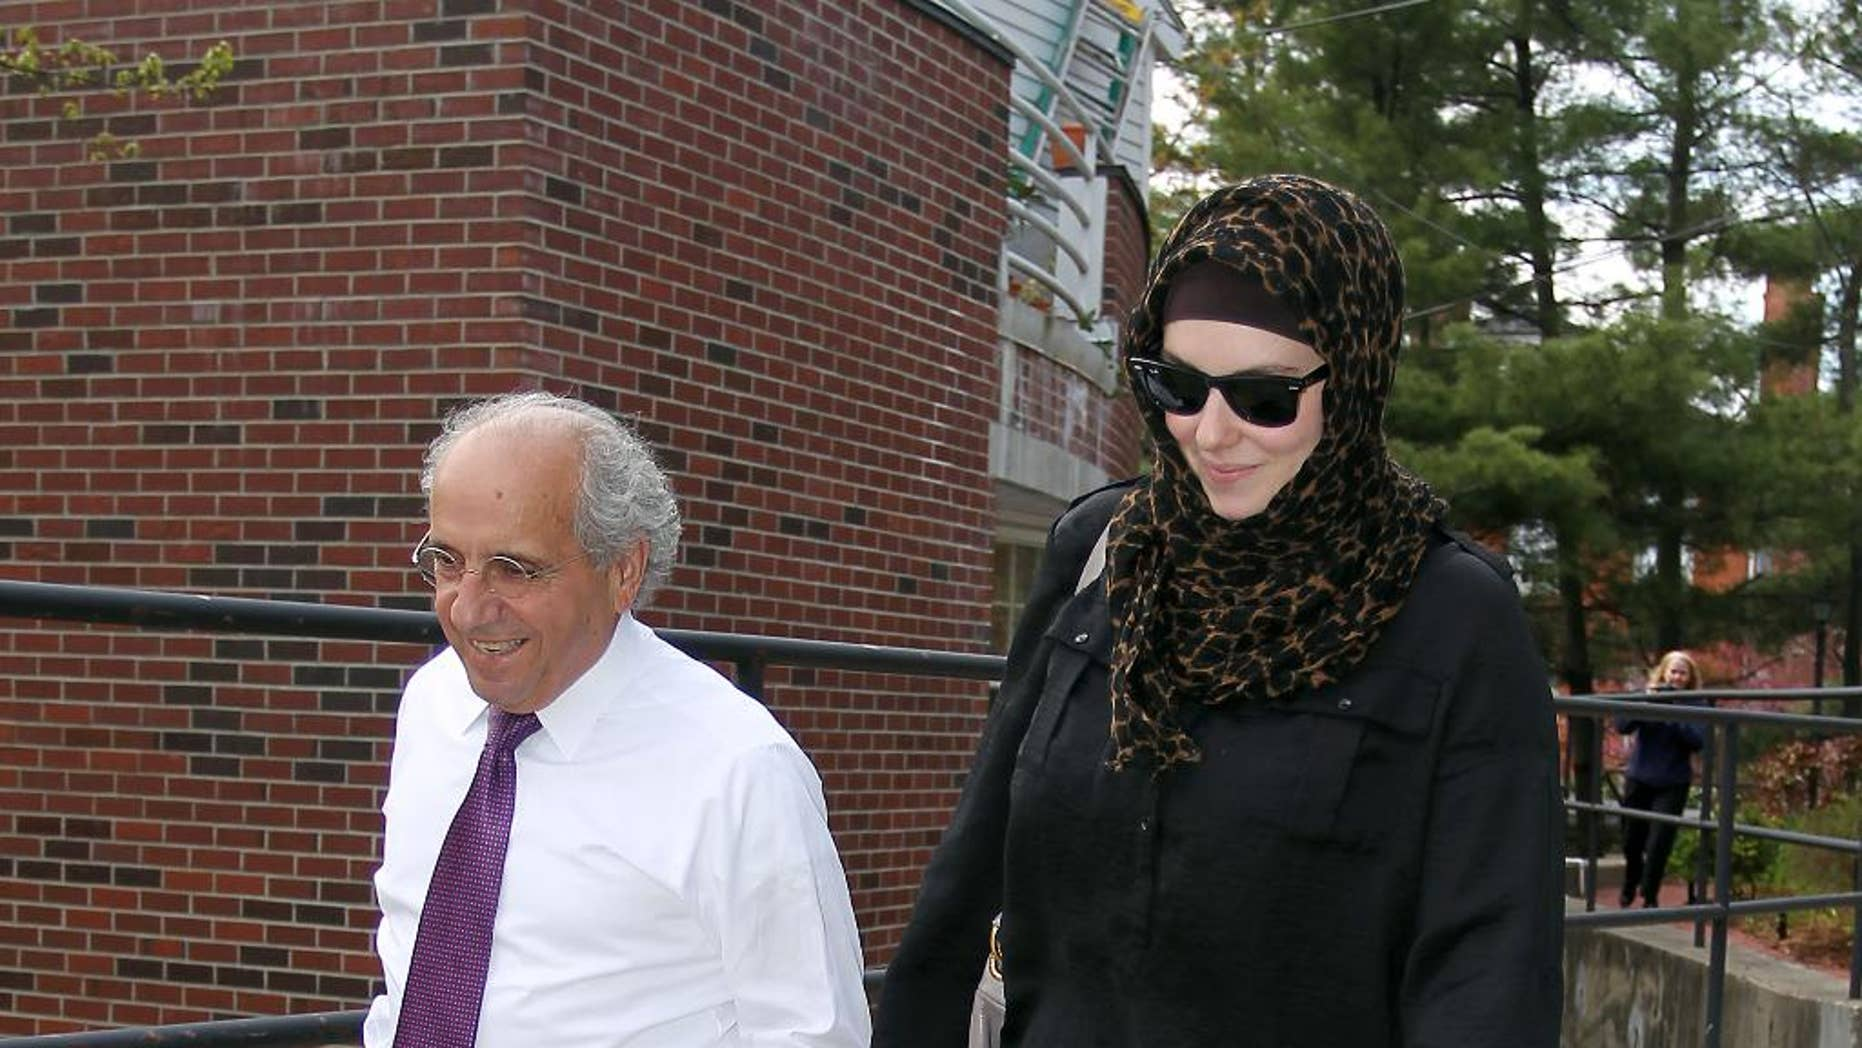 FILE - In this April 29, 2013, file photo, Katherine Russell, right, wife of Boston Marathon bomber suspect Tamerlan Tsarnaev, leaves the law office of DeLuca and Weizenbaum with Amato DeLuca, left, in Providence, R.I. DeLuca tells The Associated Press on Wednesday, March 4, 2015, that he and his client, Russell, have not heard from federal officials since nearly a year ago, shortly before last year's Boston Marathon. DeLuca says they have not been contacted by the defense. (AP Photo/Stew Milne, File)